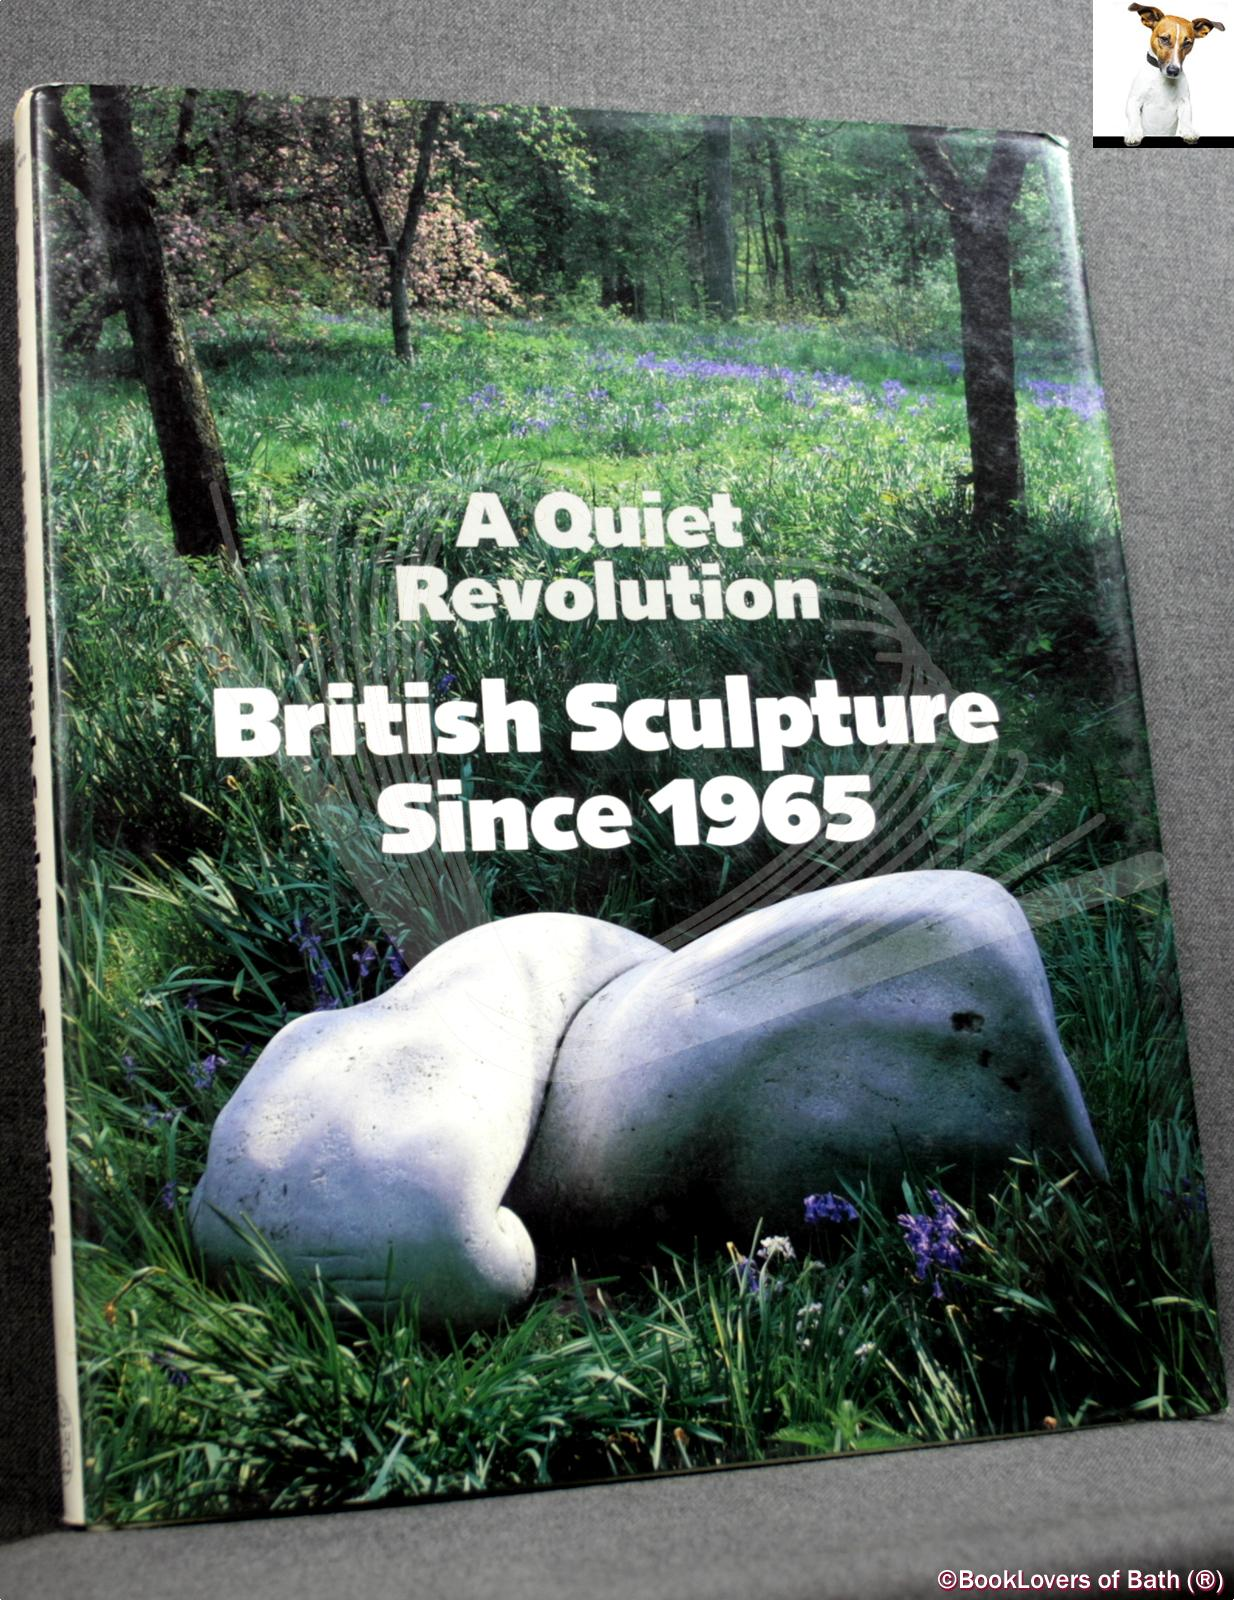 A Quiet Revolution: British Sculpture Since 1965 - Edited by Terry A. Neff with Essays by Graham Beal, Lynne Cooke, Charles Harrison & Mary Jane Jacob